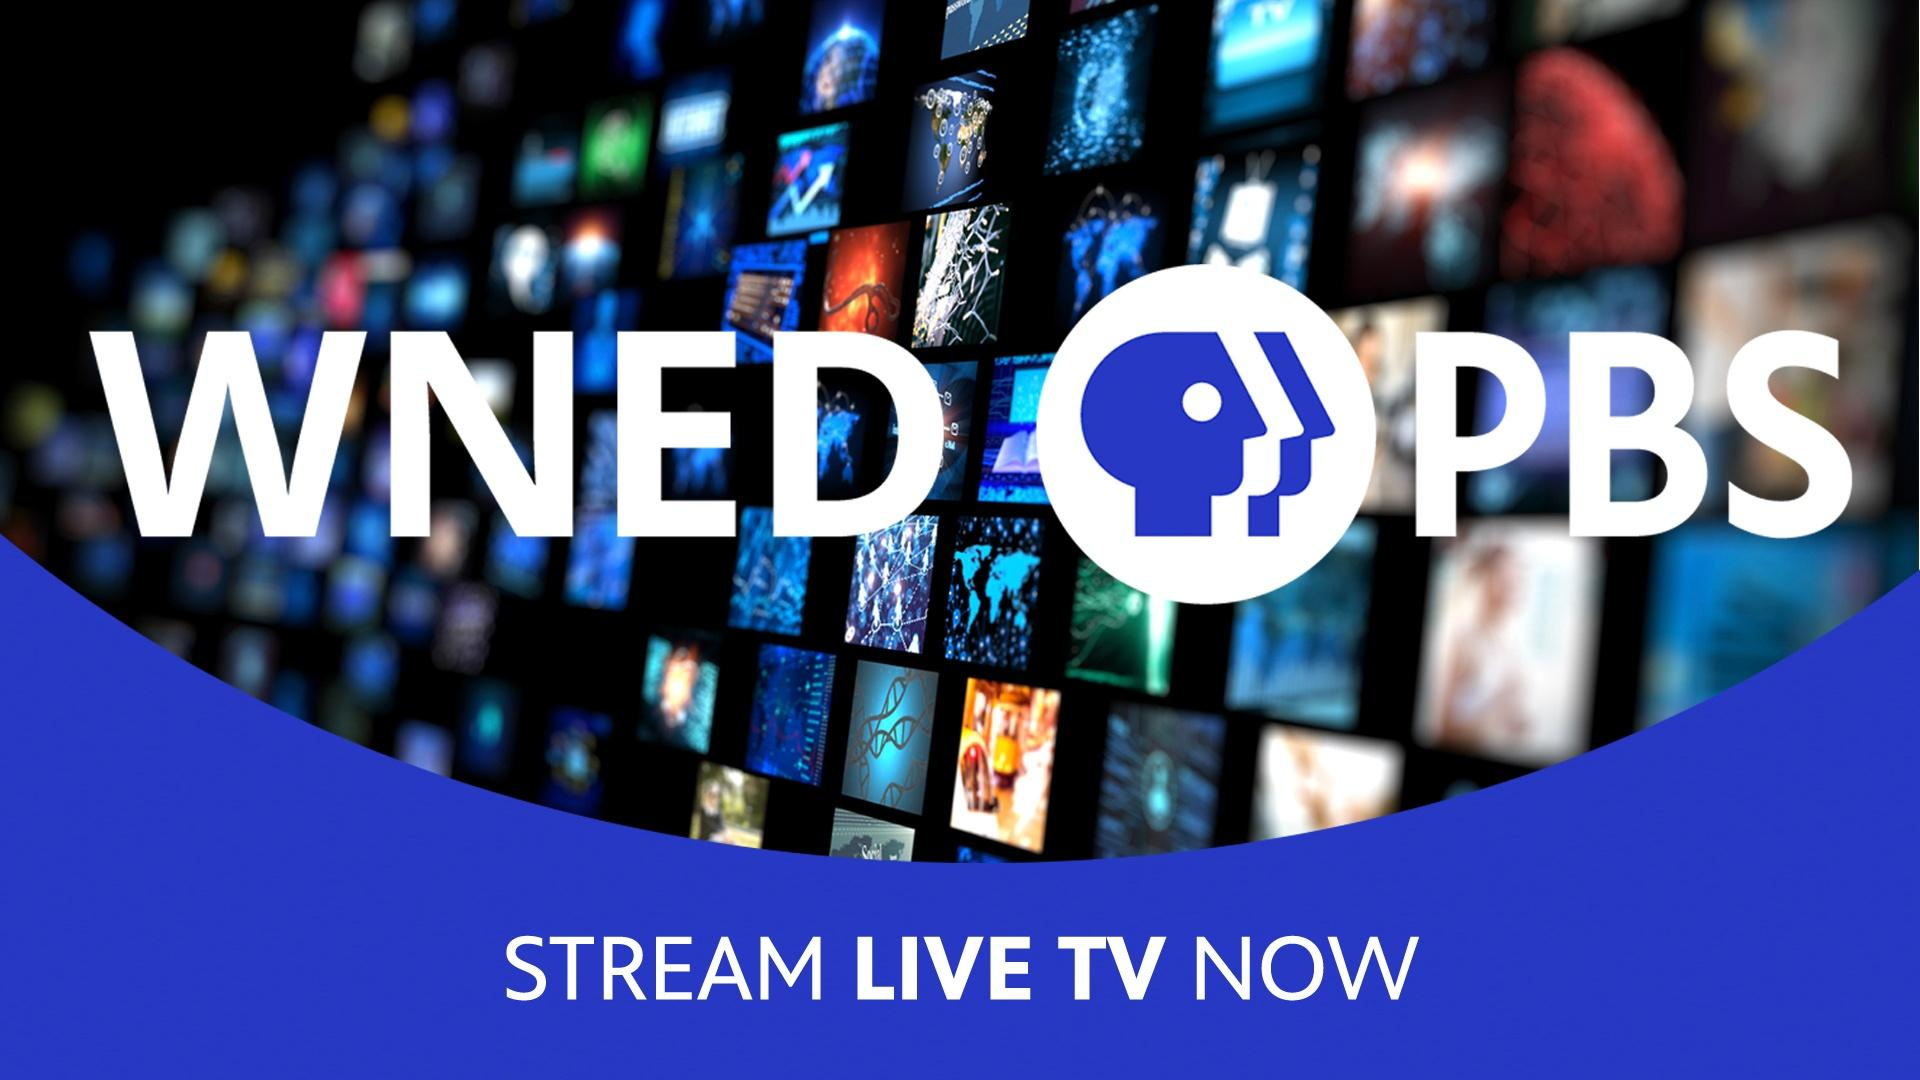 Stream Live TV Now